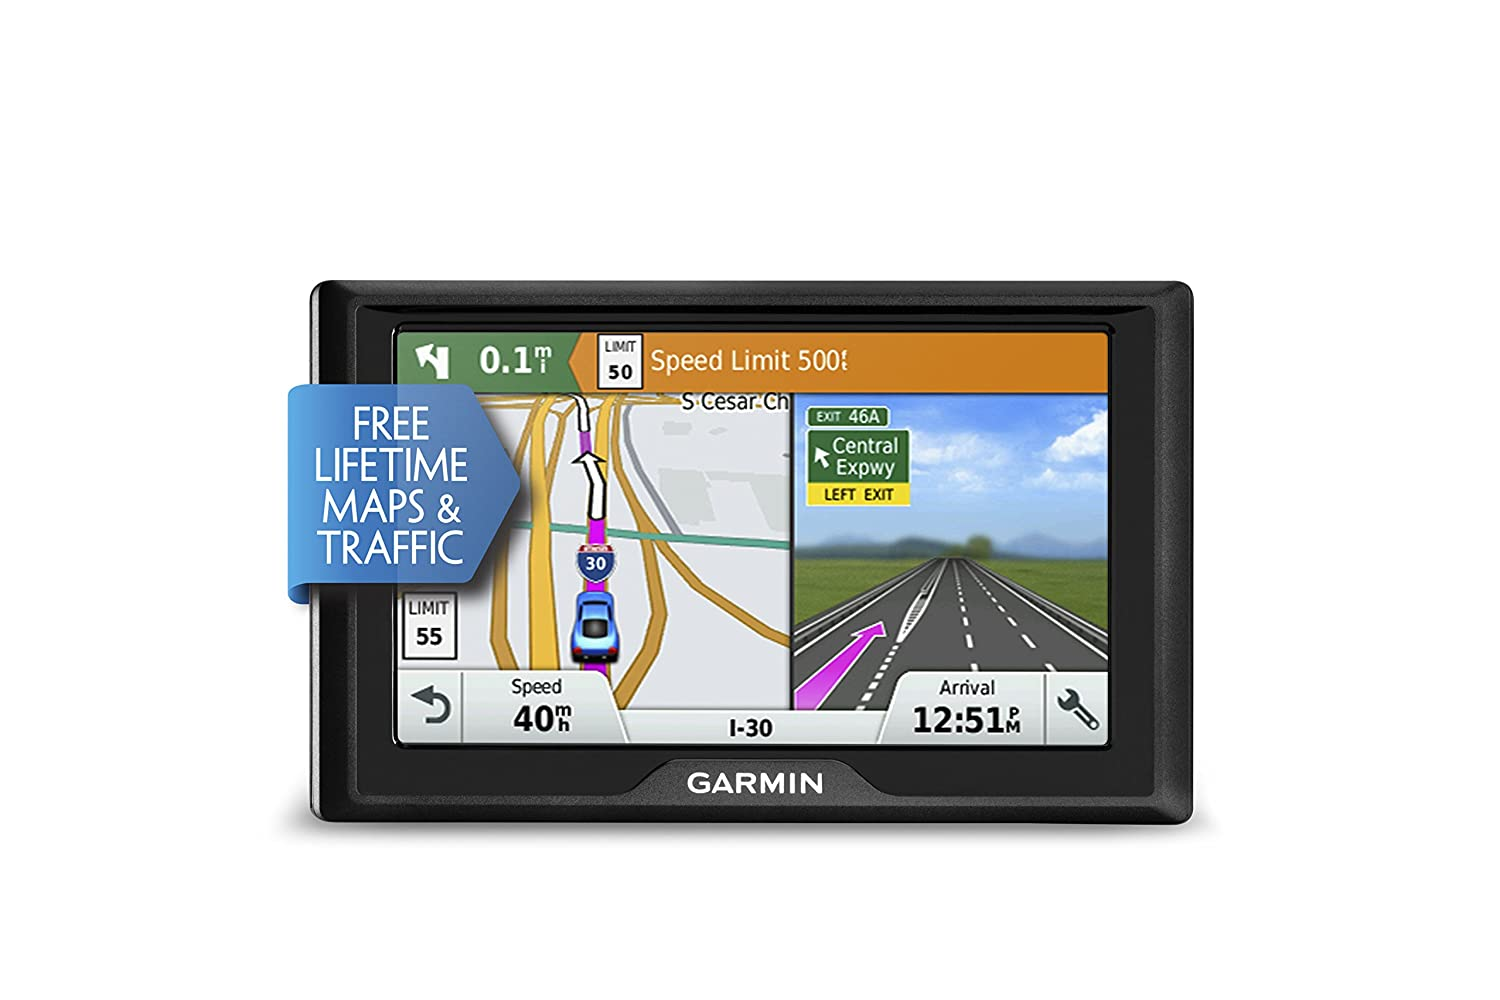 Amazon.com: Garmin Drive 60 USA + CAN LMT GPS Navigator System with  Lifetime Maps and Traffic, Driver Alerts, Direct Access, and Foursquare  data: Cell ...